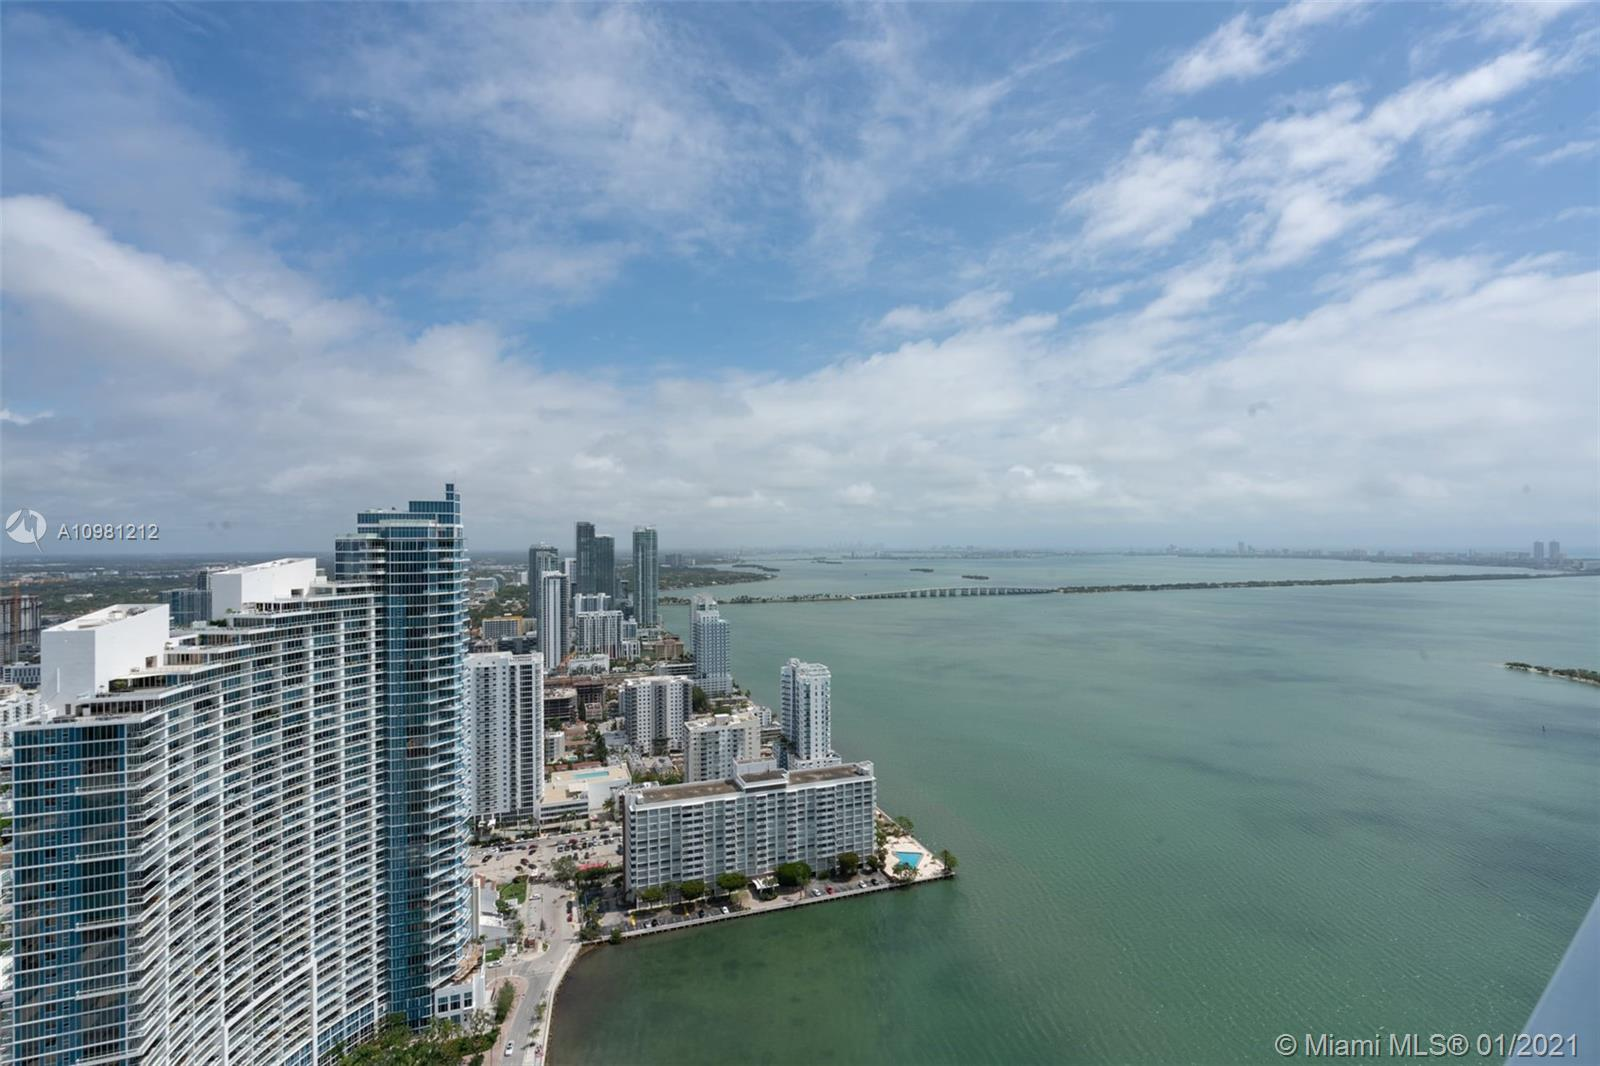 STUNNING 3 BED, 2.5 BATH, 49TH FLOOR PENTHOUSE WITH AMAZING OCEAN, BAY & SUNSET VIEWS LOCATED IN THE HEART OF EDGEWATER MIAMI, DIRECTLY ACROSS THE STREET FROM MARGARET PACE PARK & BISCAYNE BAY! CONTEMPORARY HIGH-END FURNISHINGS WITH CUSTOM FEATURES & FIXTURES THROUGHOUT INCLUDE: MARBLE FLOORS, CUSTOM DESIGNED JACUZZI TUB & STANDING SHOWER IN MASTER BATH, ELECTRIC BLACKOUT SHADES IN MASTER, BUILT-IN WINE COOLER, STAINLESS STEEL APPLIANCES, AND CUSTOM CLOSETS IN EVERY ROOM! UNIT ALSO INCLUDES 2 DEEDED PARKING SPACES LOCATED ON 3RD FLOOR OF GARAGE! A DEFINITE MUST SEE! **MOTIVATED SELLER**